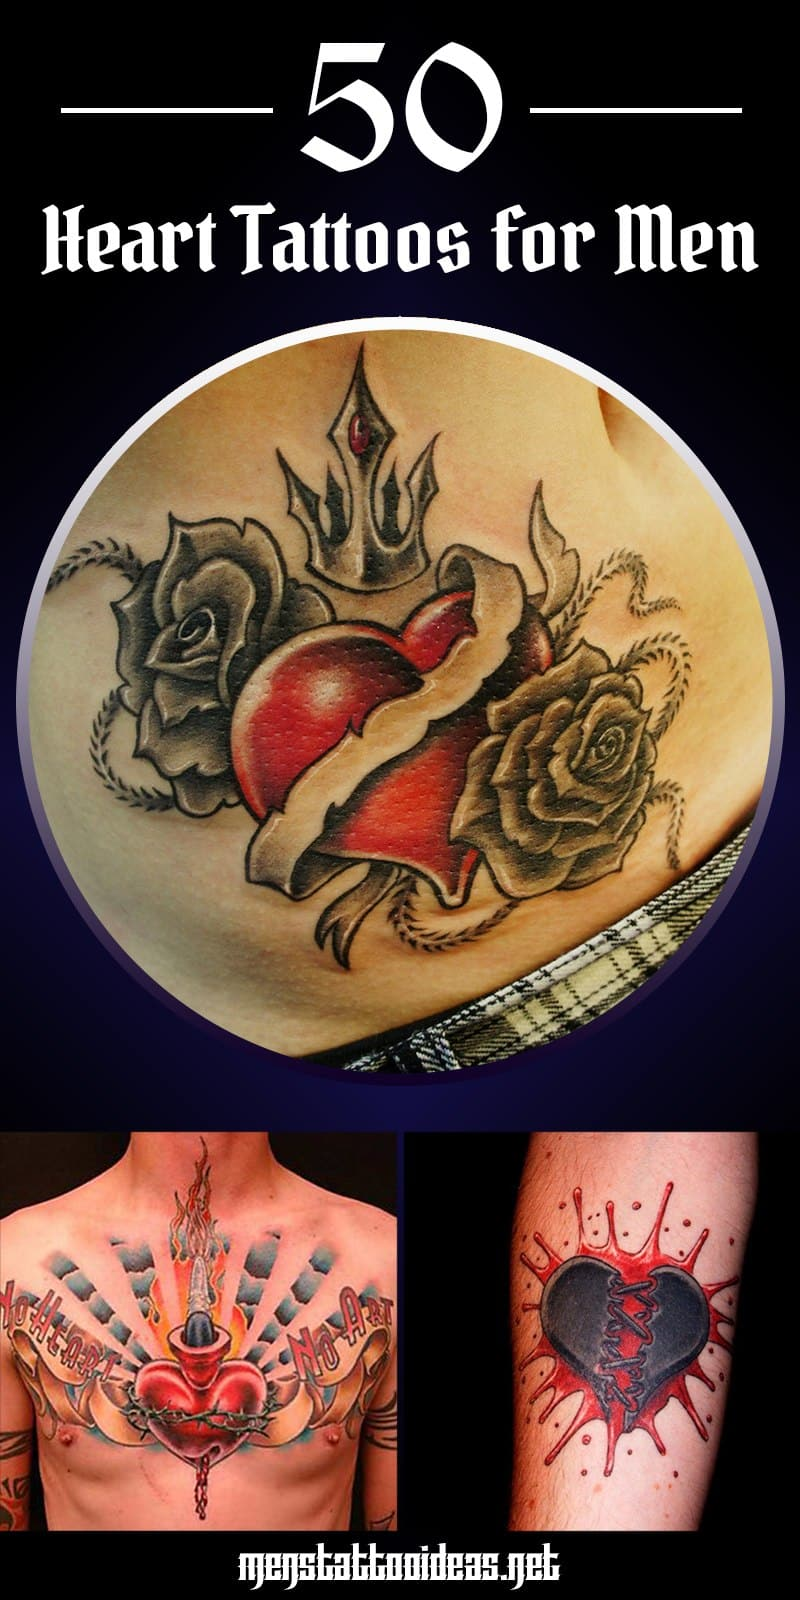 b73d105f4 Heart Tattoos for Men - Design Ideas for Guys